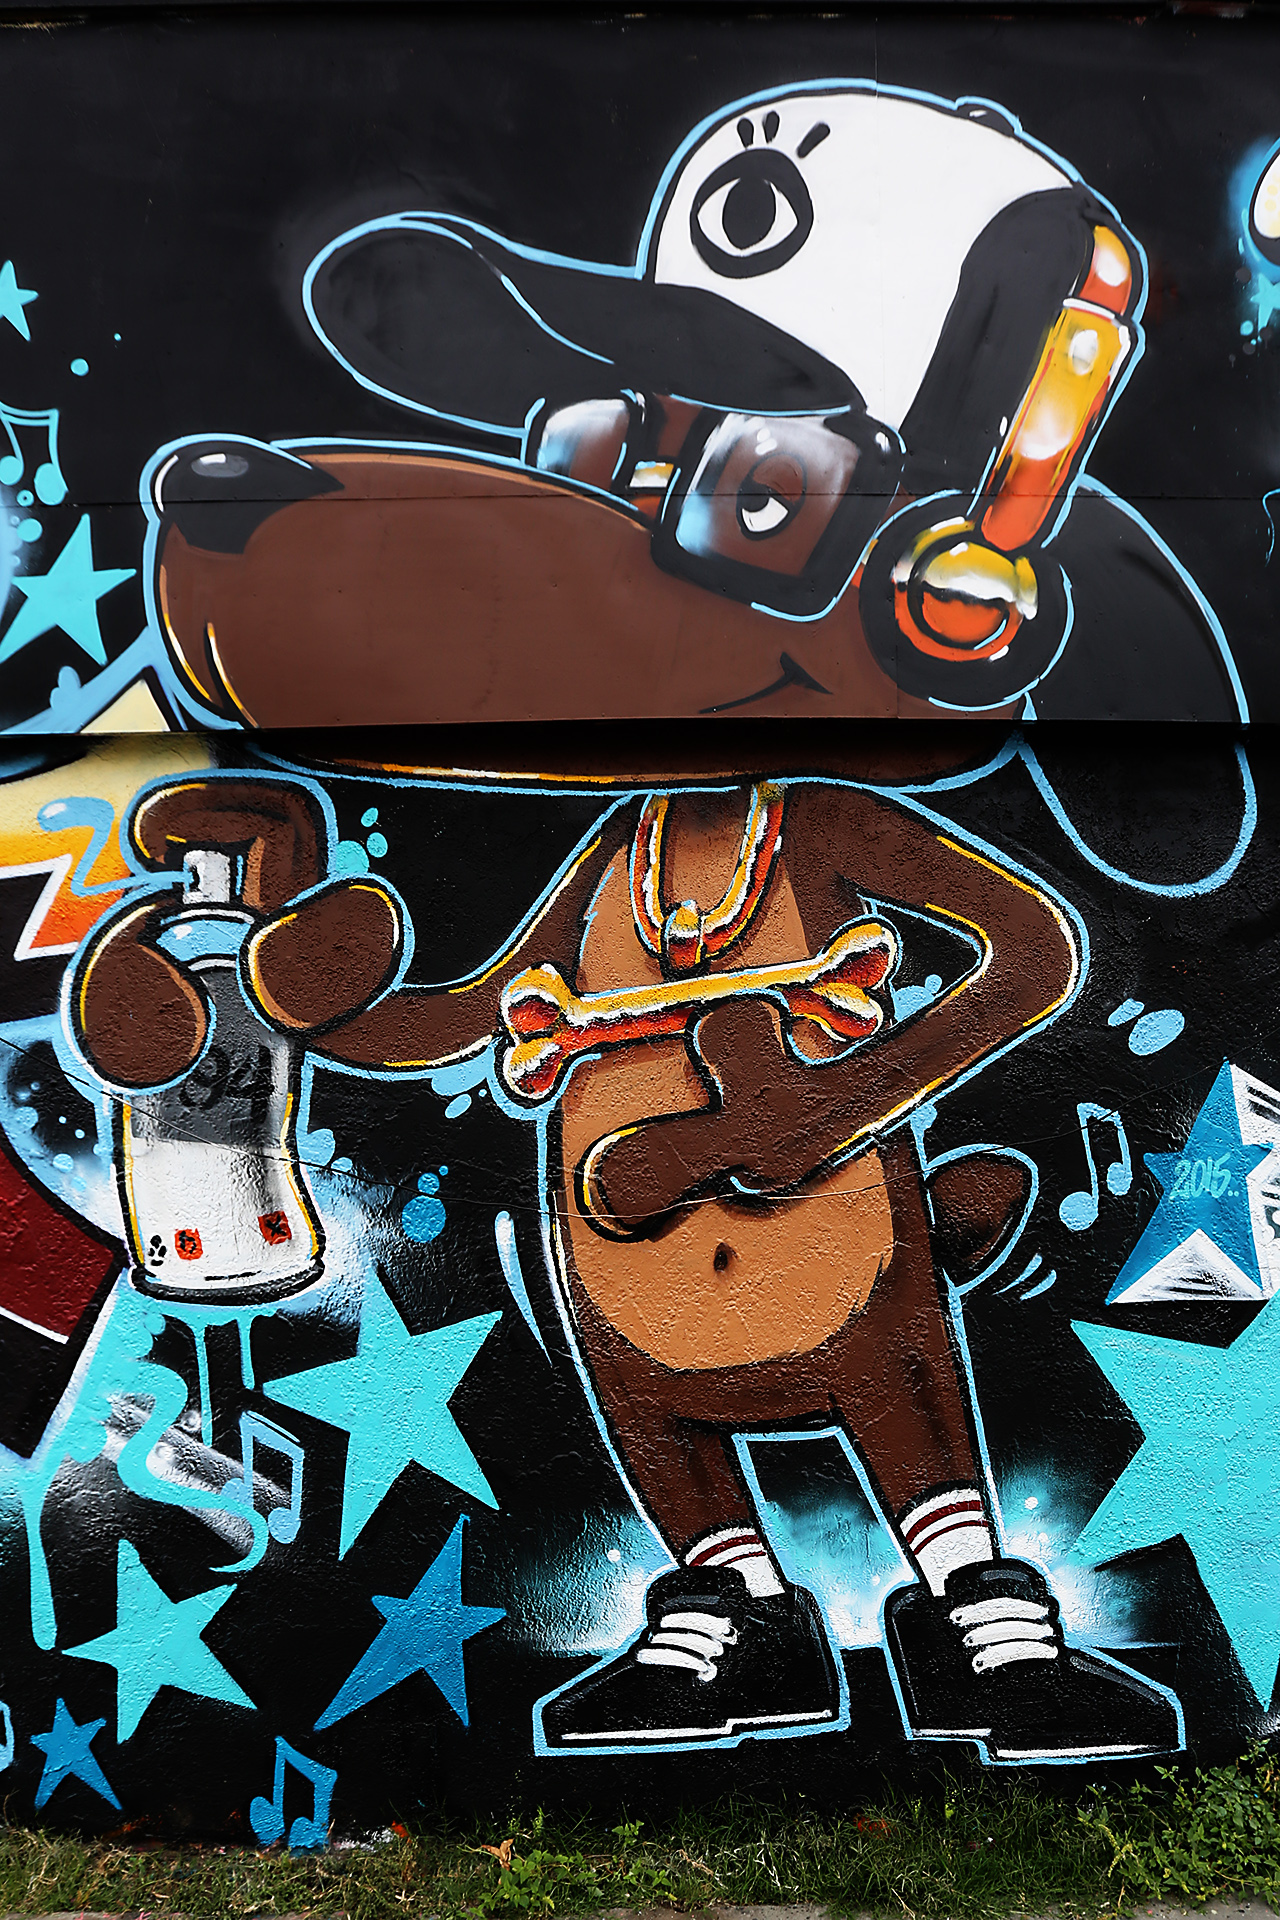 self uno commission paulys project mural art selfuno los angeles may 2015